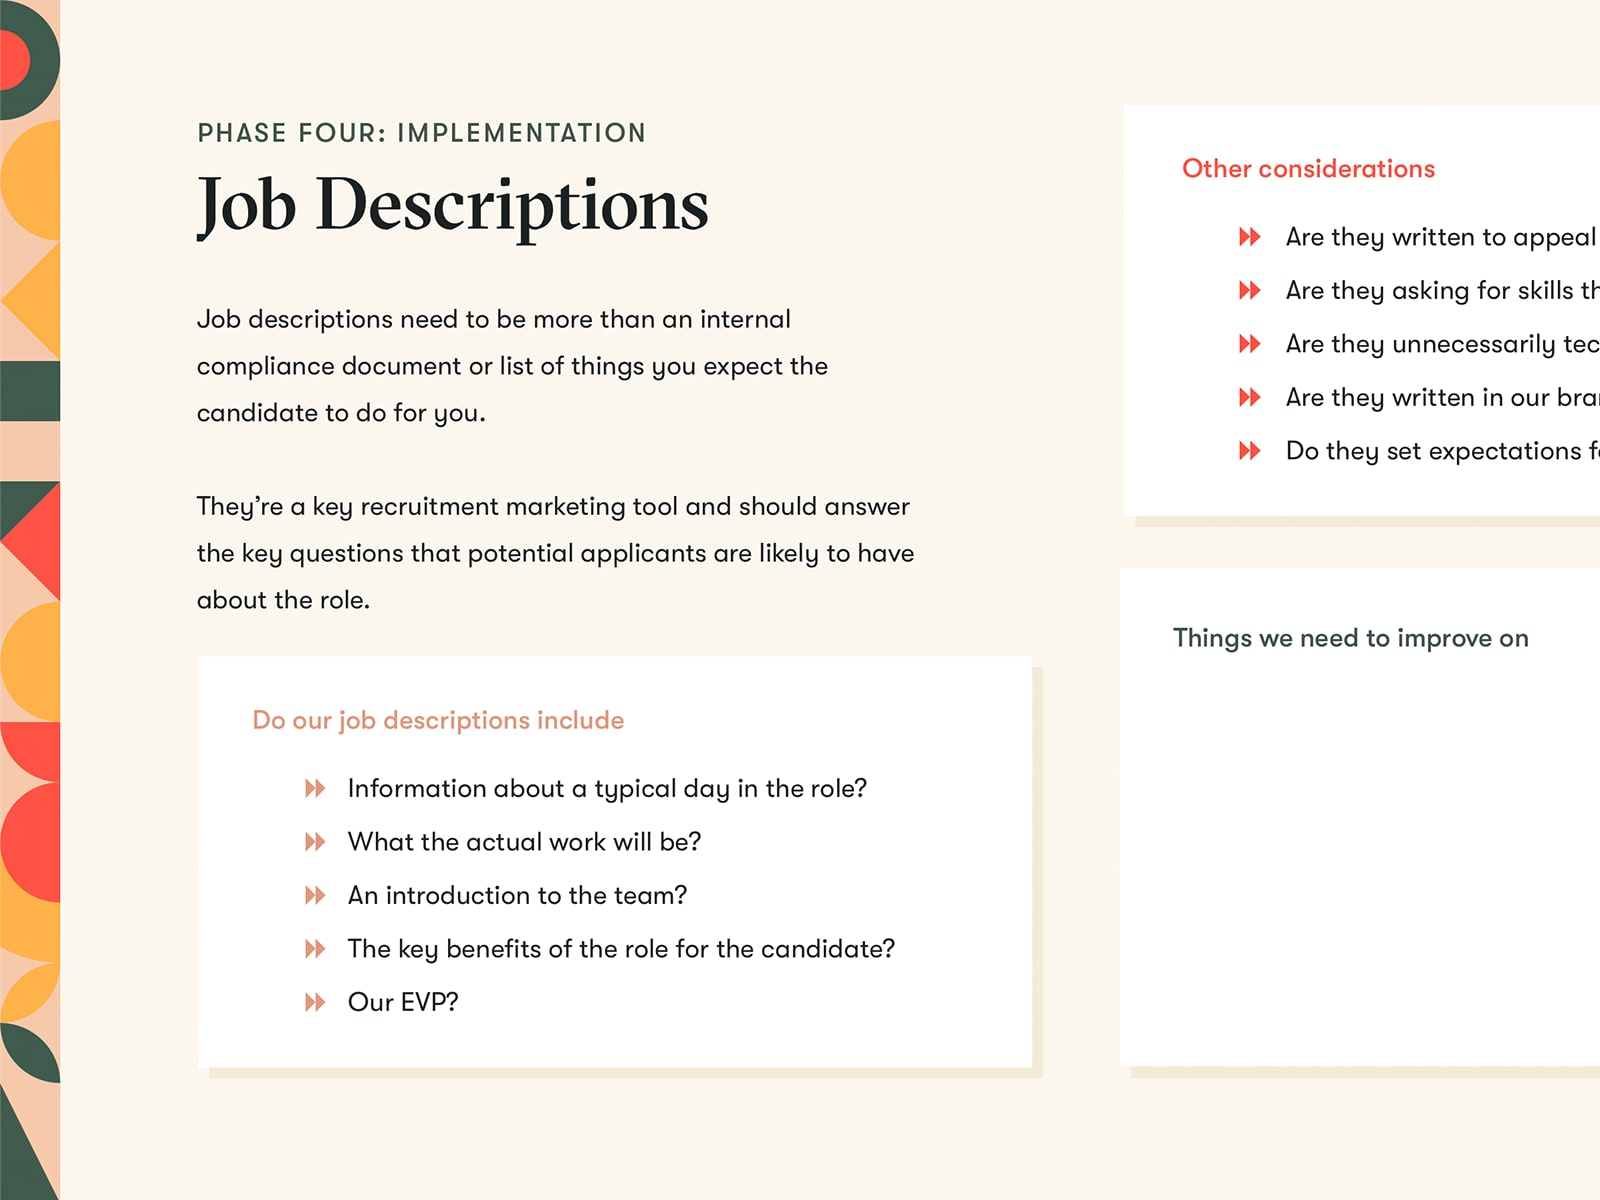 Job Description Page from Employer Branding Template